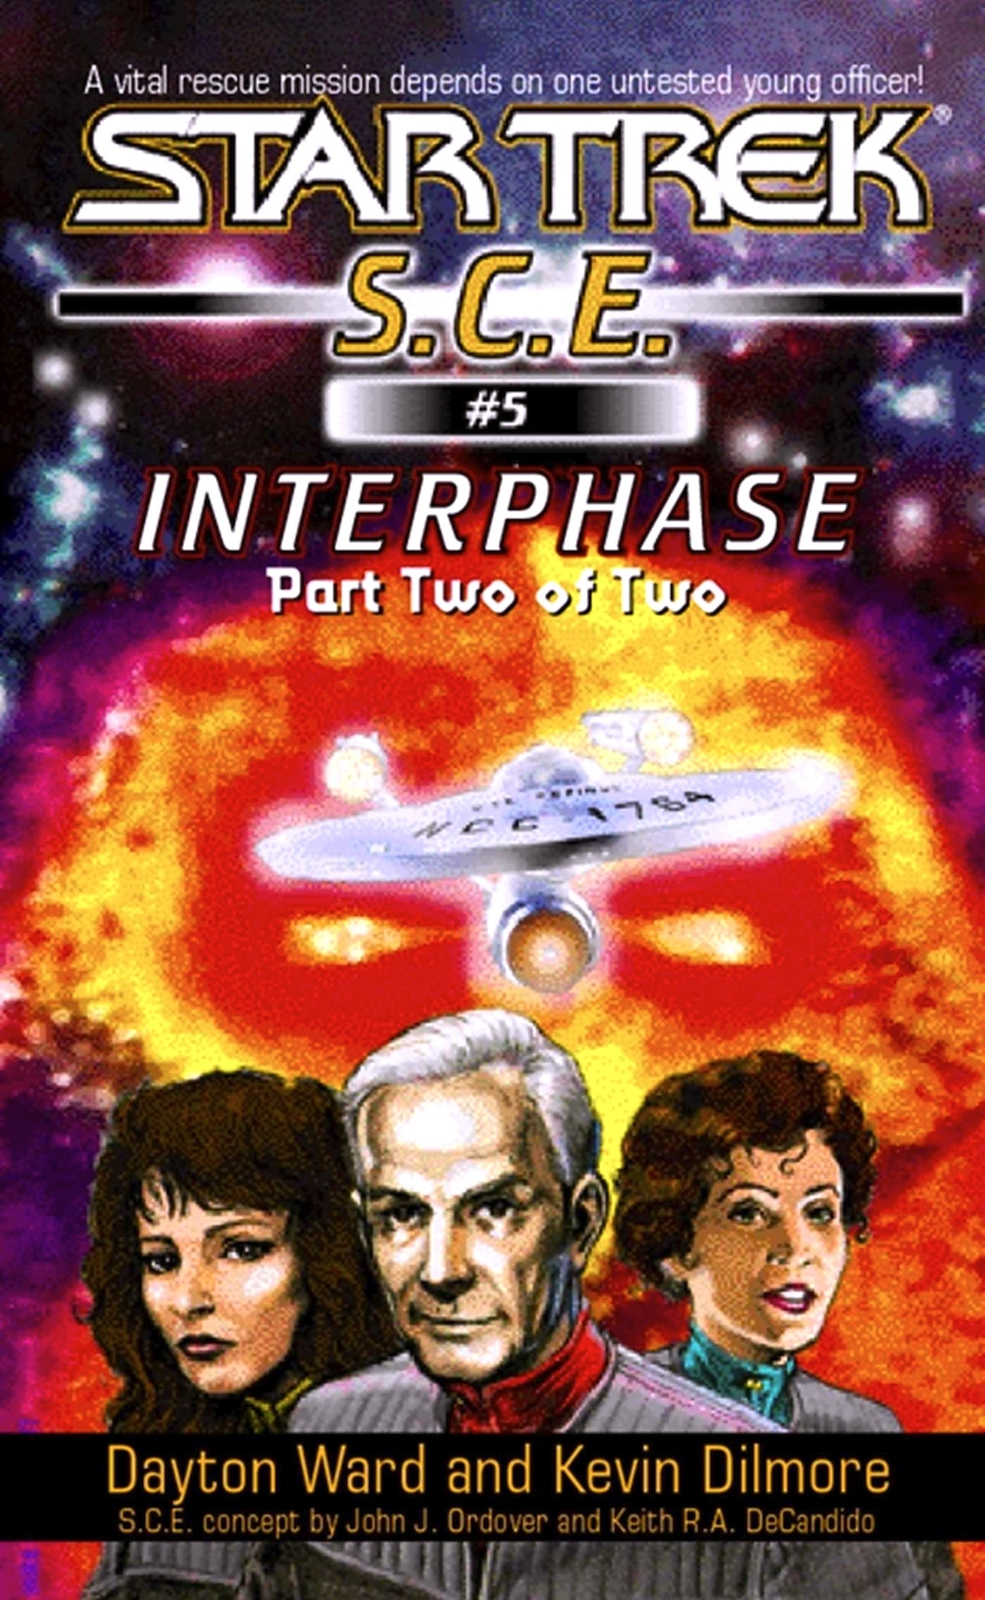 Interphase ebook memory beta non canon star trek wiki 2376 interphase book one and two are the fourth and fifth installments in the star trek starfleet corps of engineers fandeluxe Ebook collections